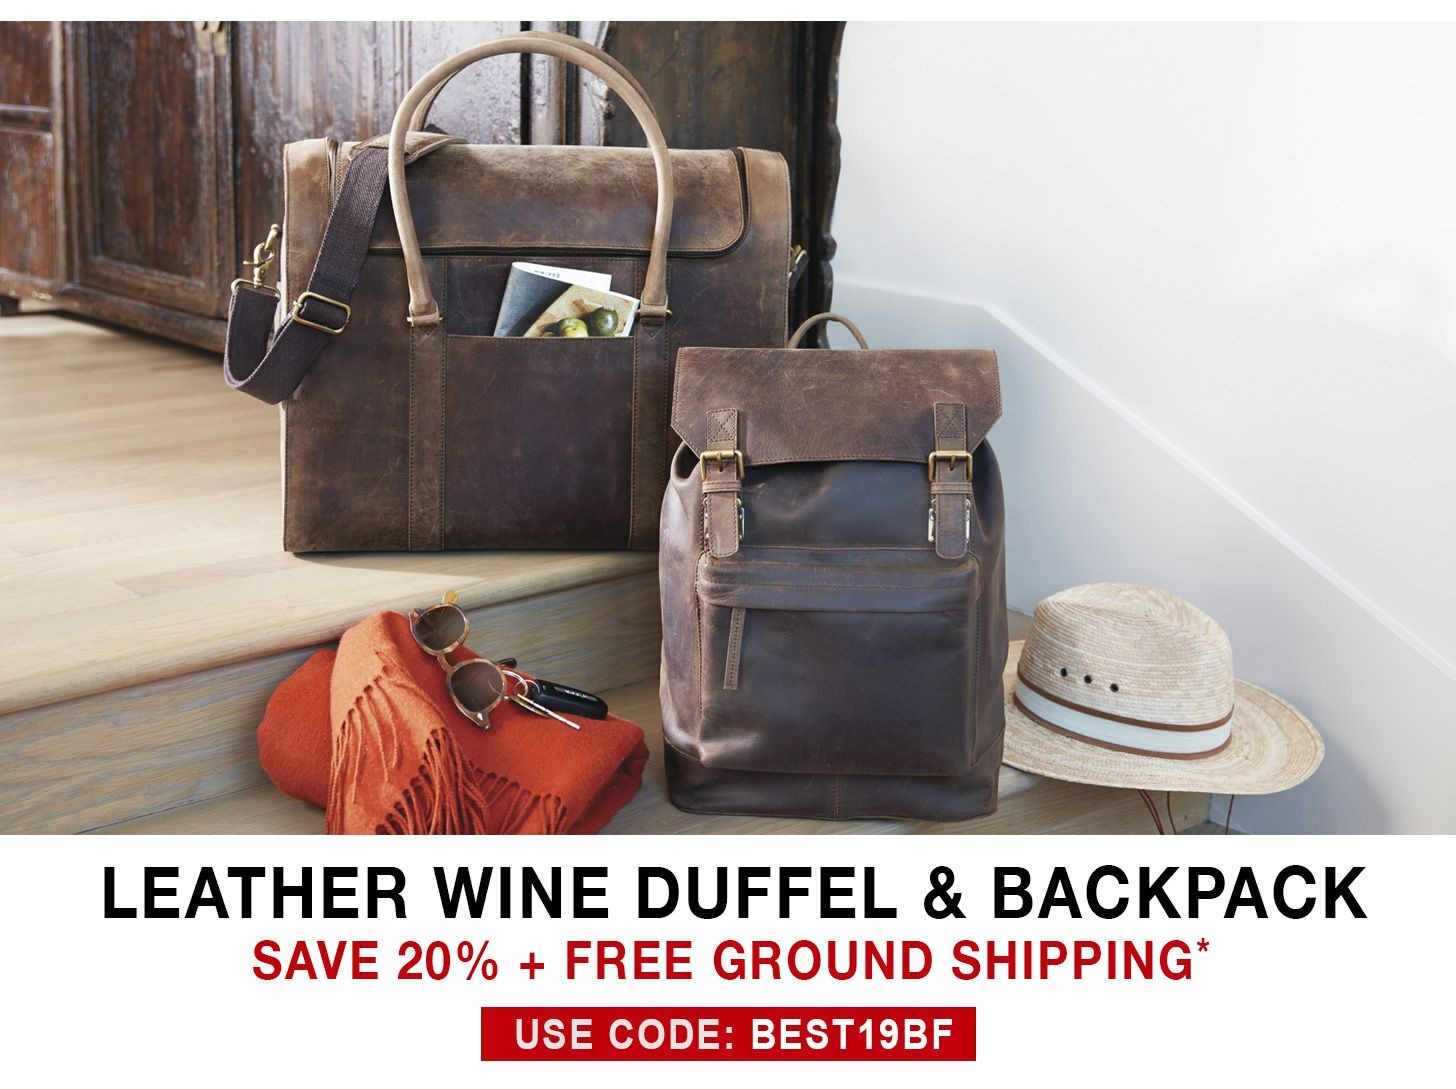 Leather Wine Duffel & Backpack - 20% Off + Free Ground Shipping - Use Code BEST19BF